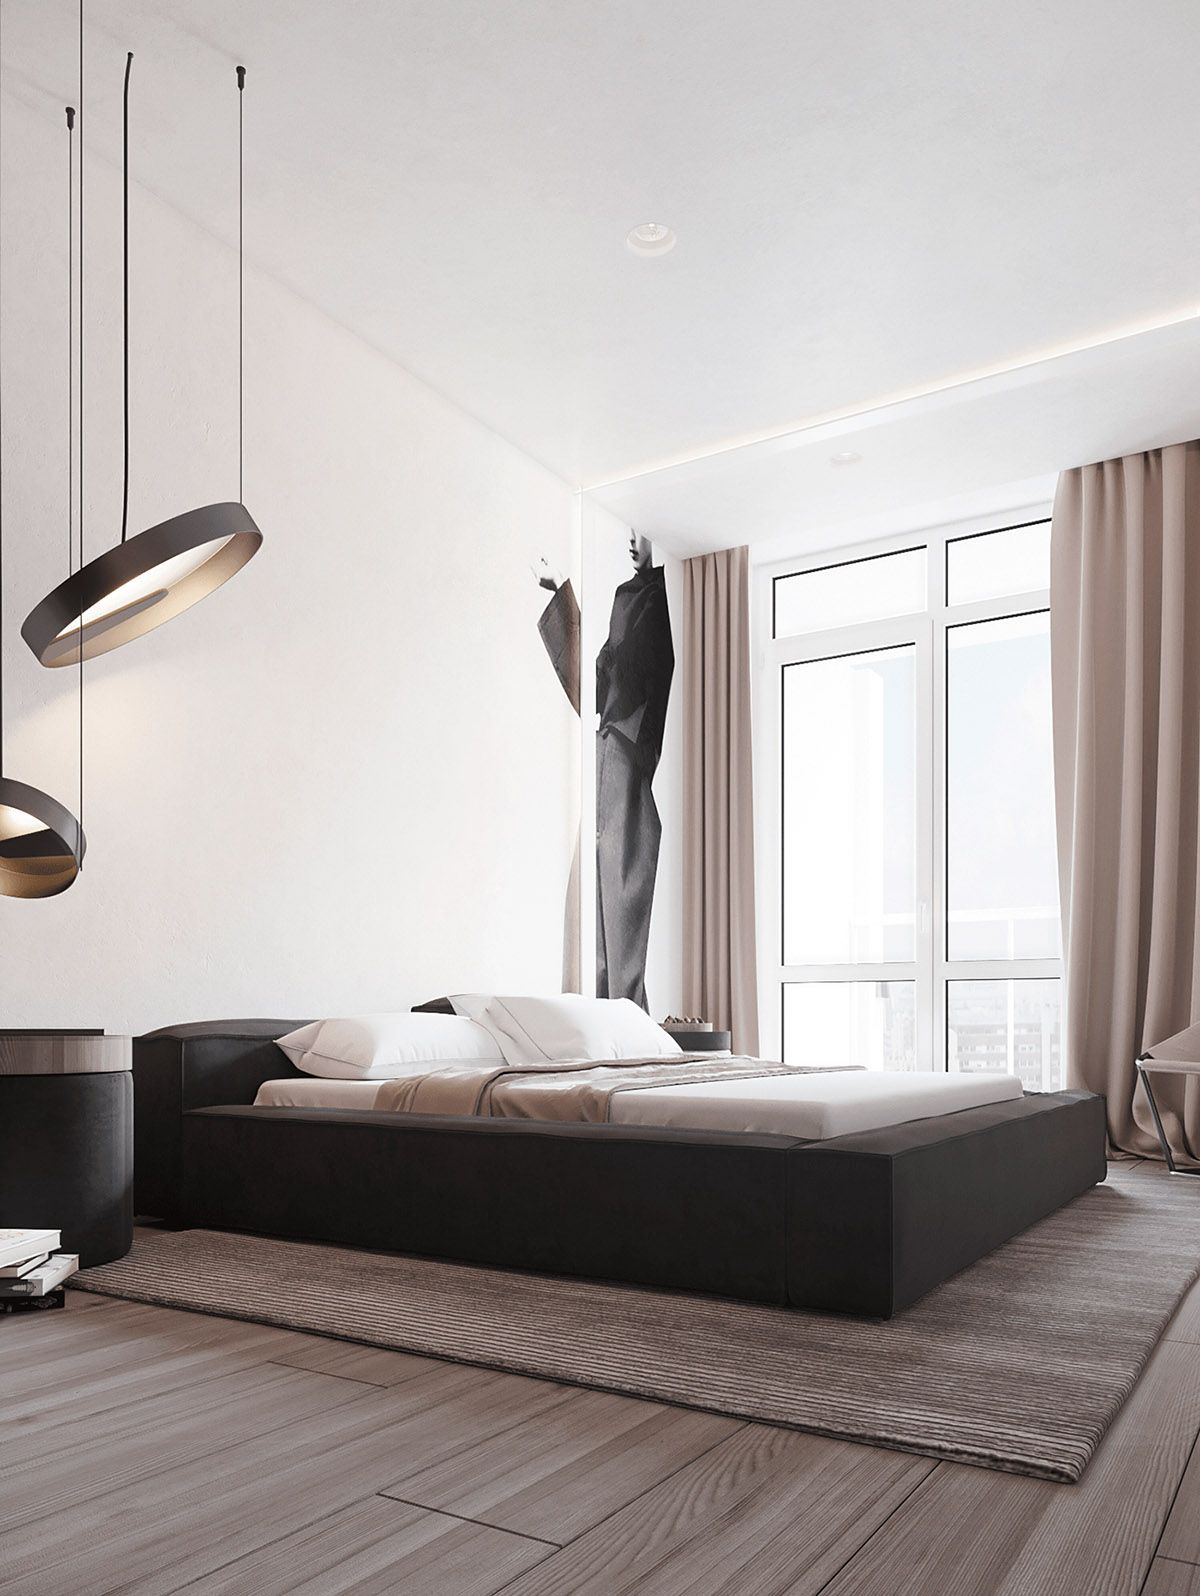 Black, White & Beige Apartment For The Fashionista images